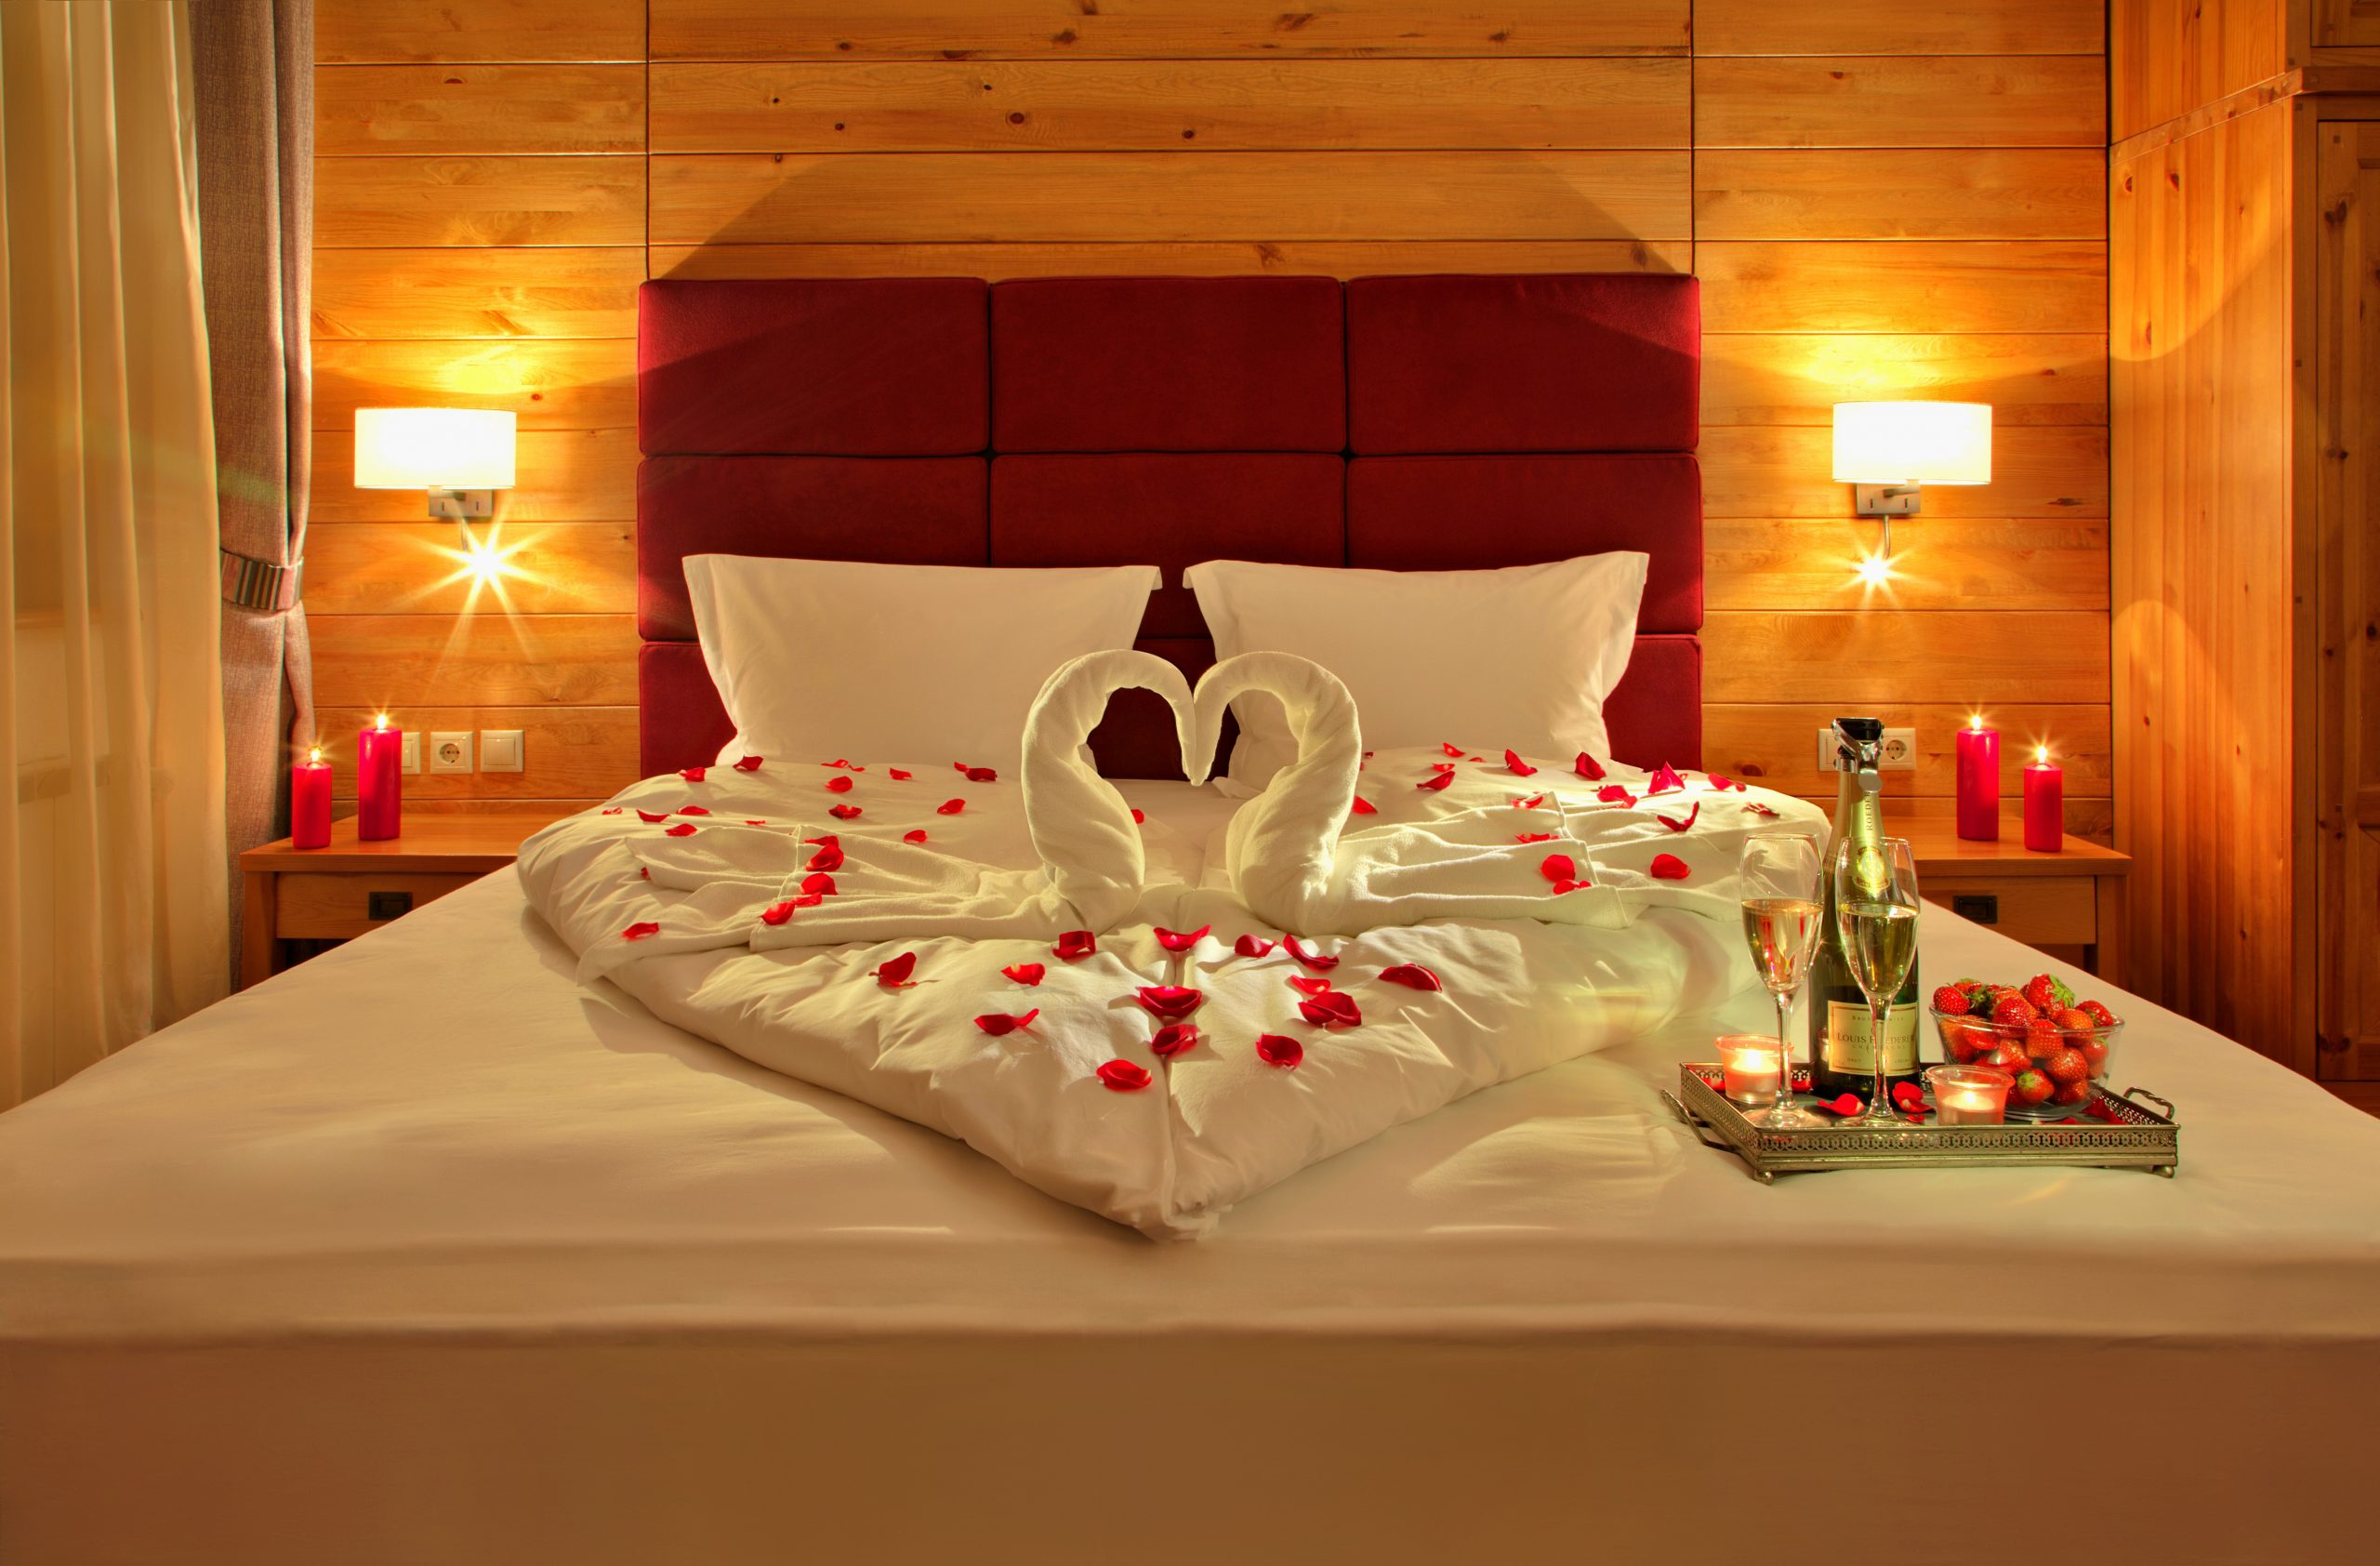 Take advantage of the special Kempinski Romance offer and indulge in a splendid vacation at Kempinski Hotel Grand Arena Bansko